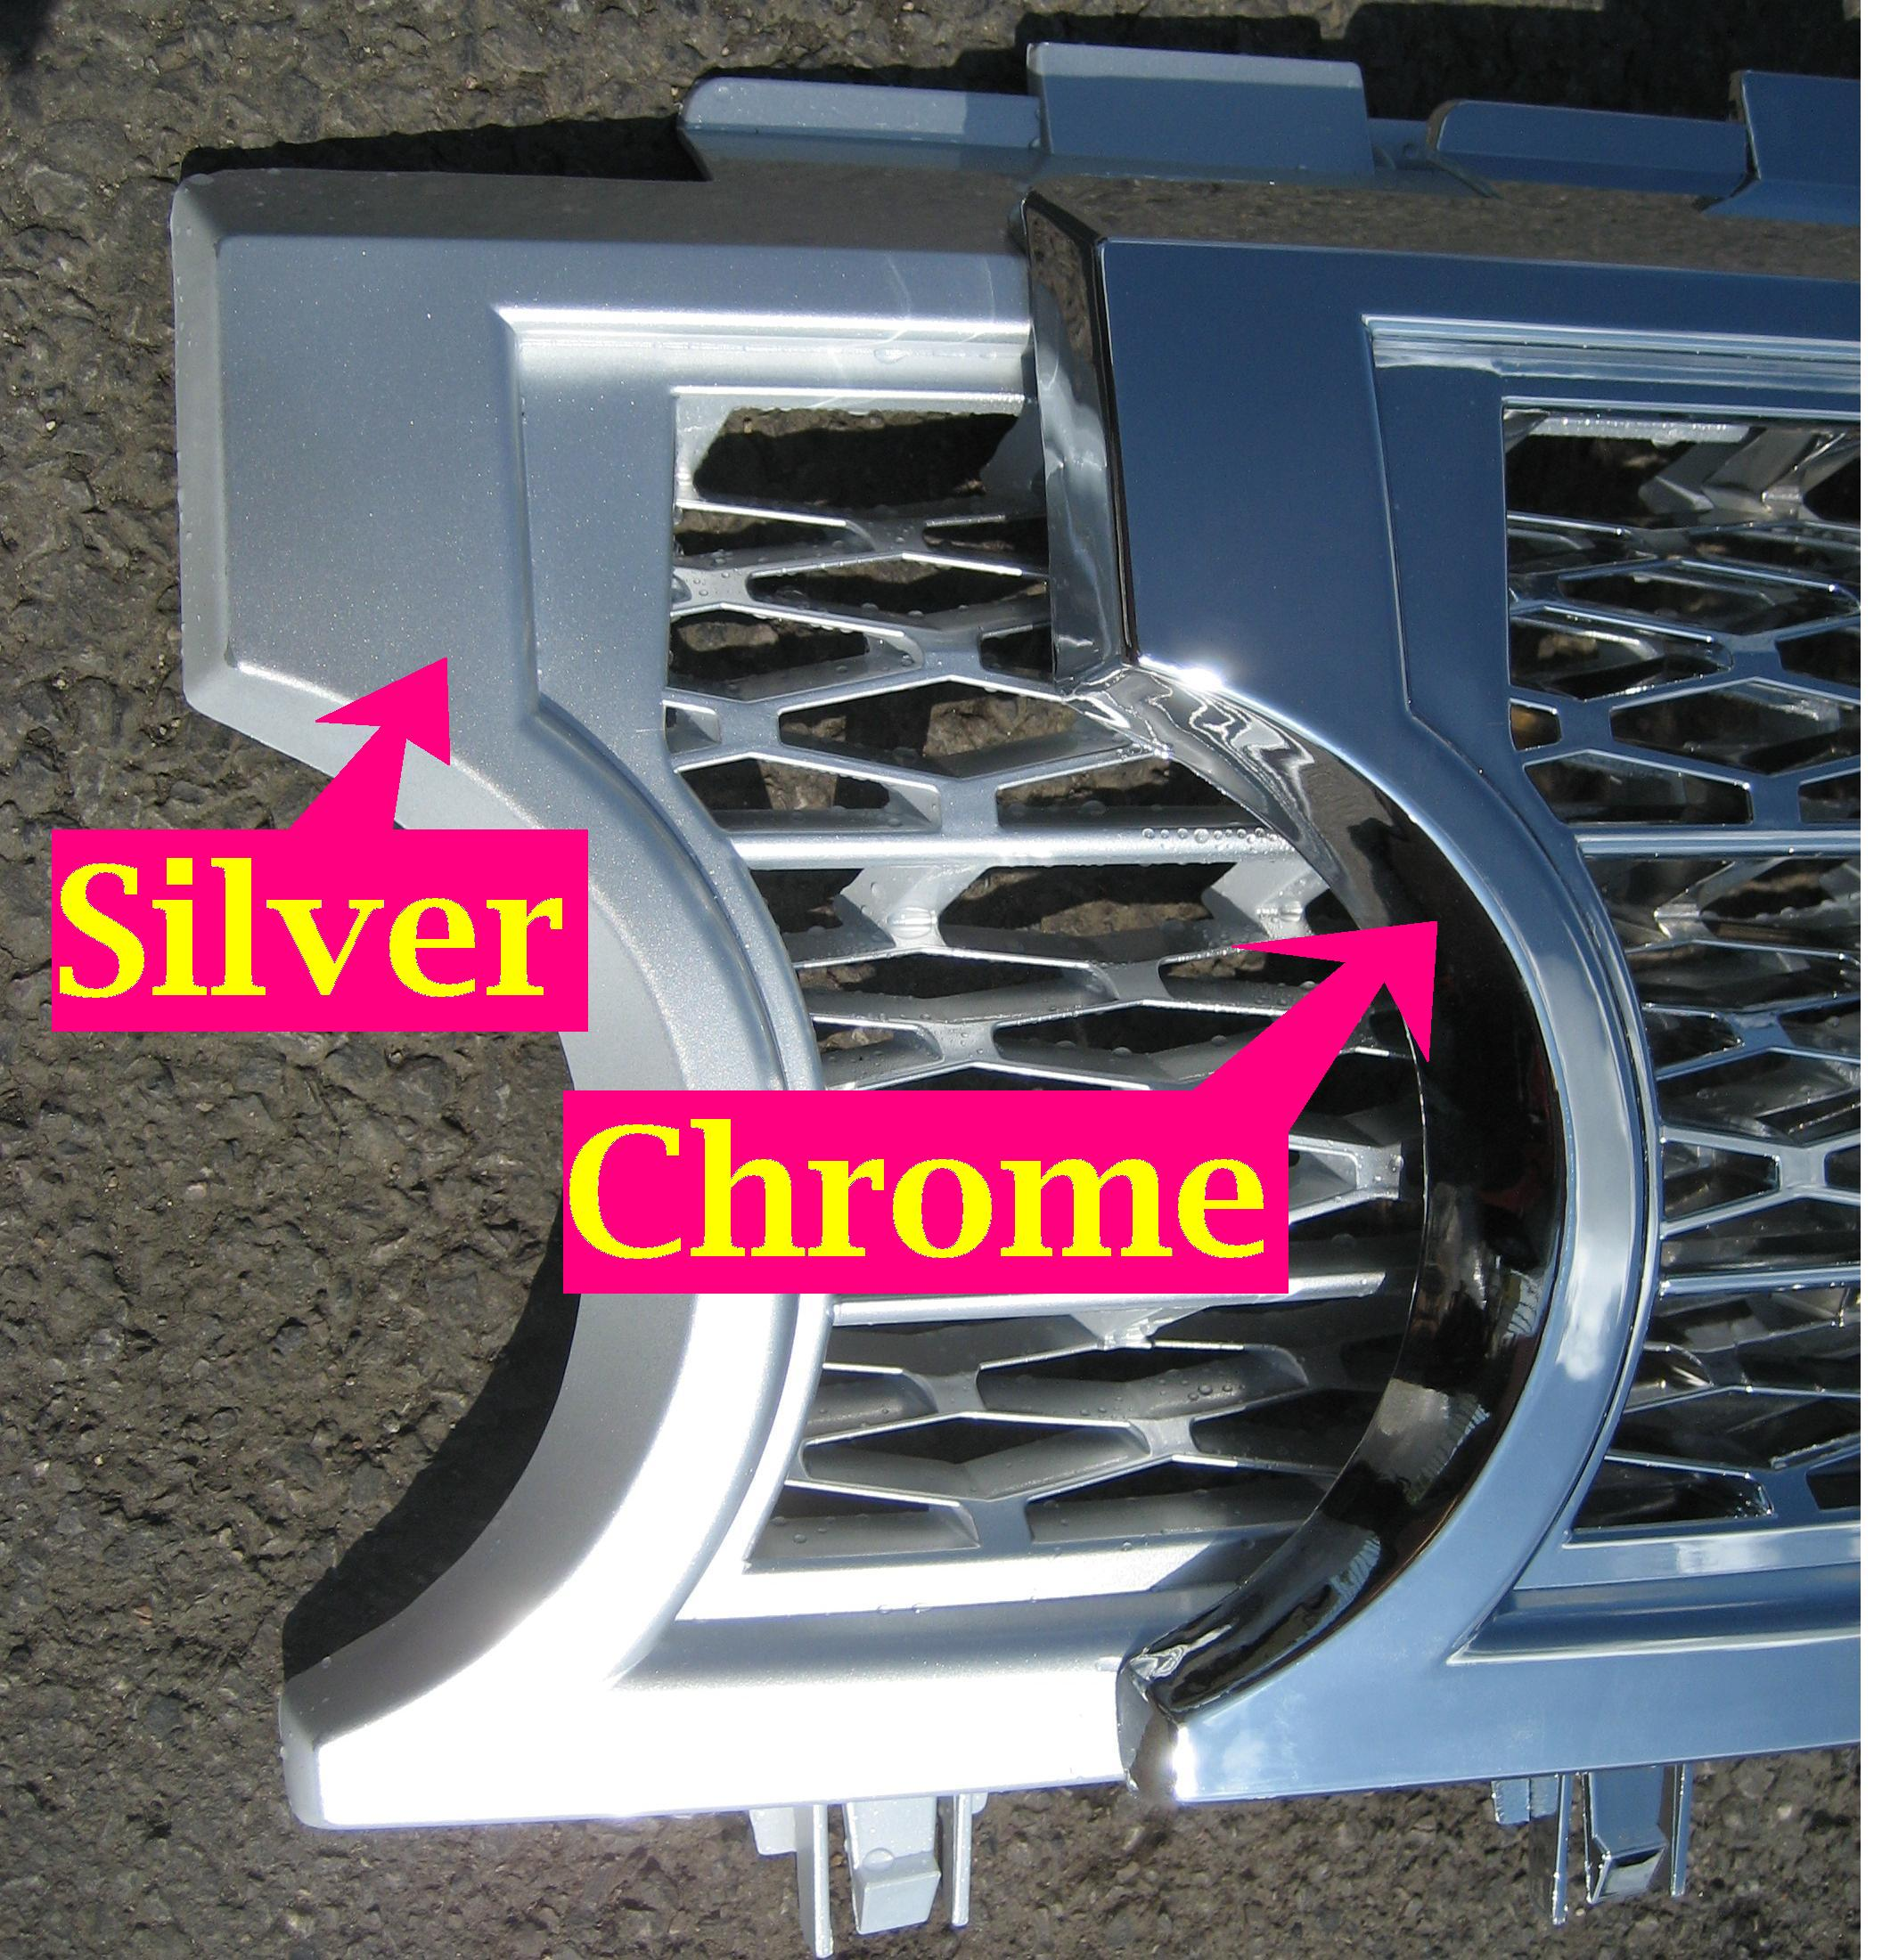 Purchase Used 2003 Land Rover Range Rover Sliver Hse 4 4l: Silver SUPERCHARGED Grille Upgrade Kit For Range Rover